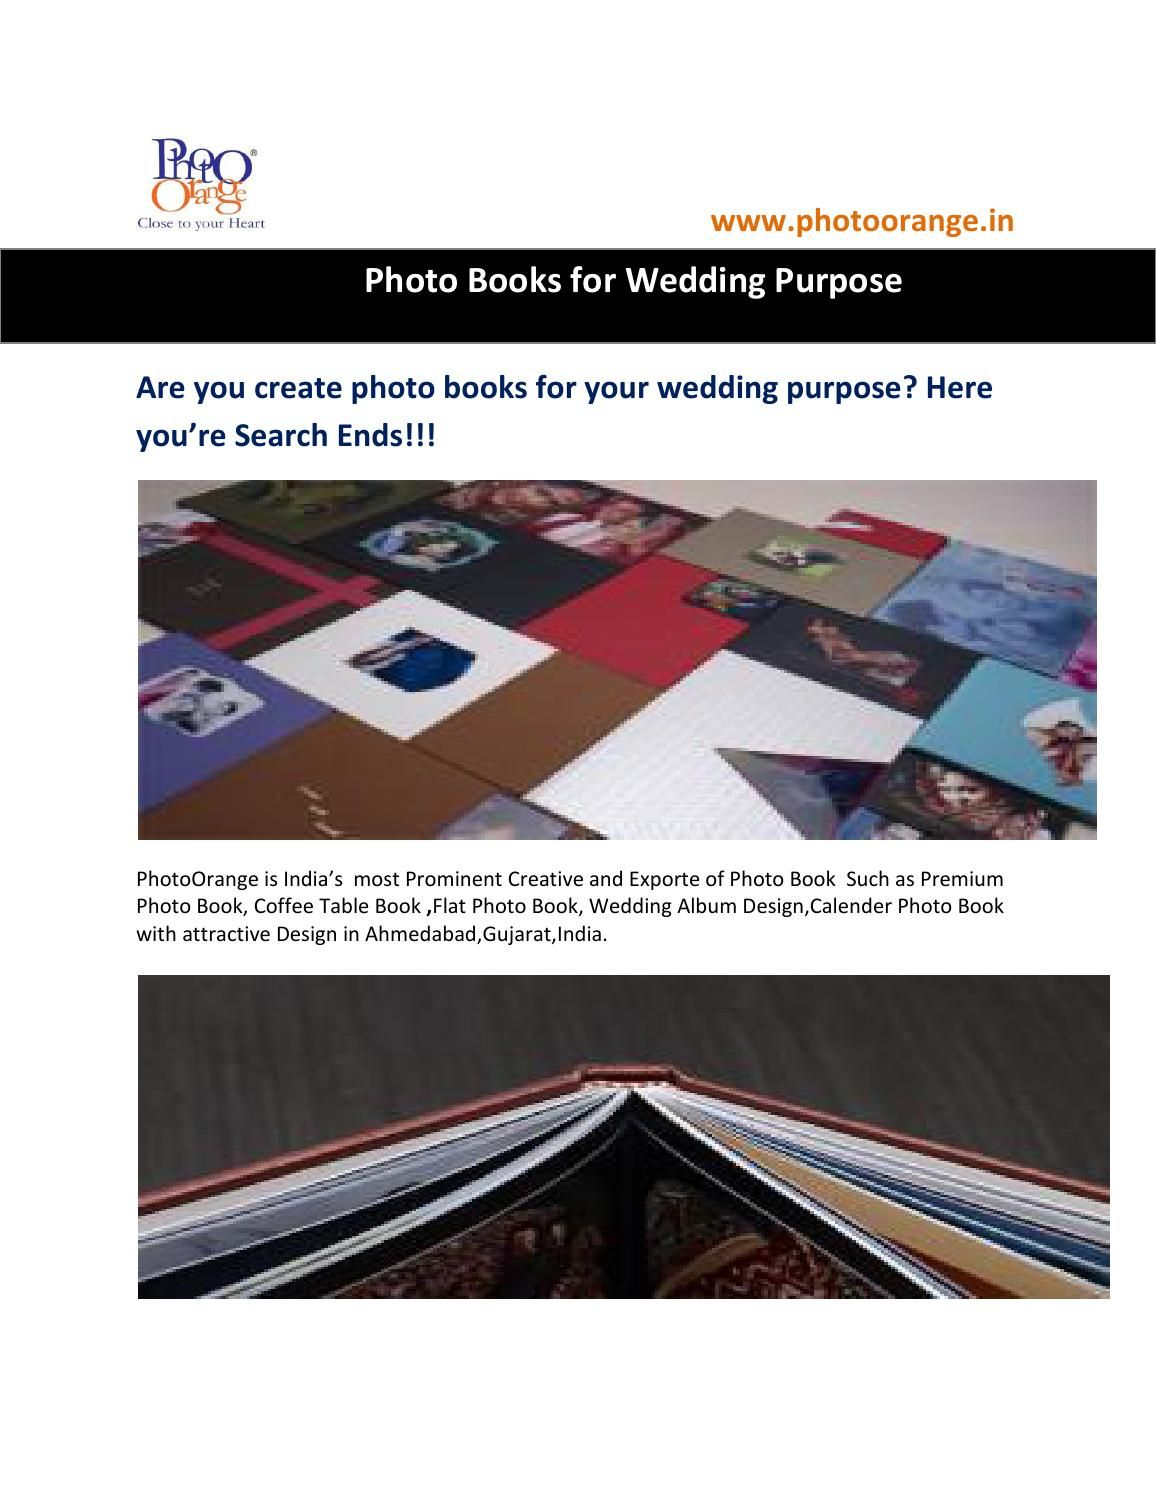 Photo Books In India Photo Books Pinterest India Books And Photos - Coffee table book printing india